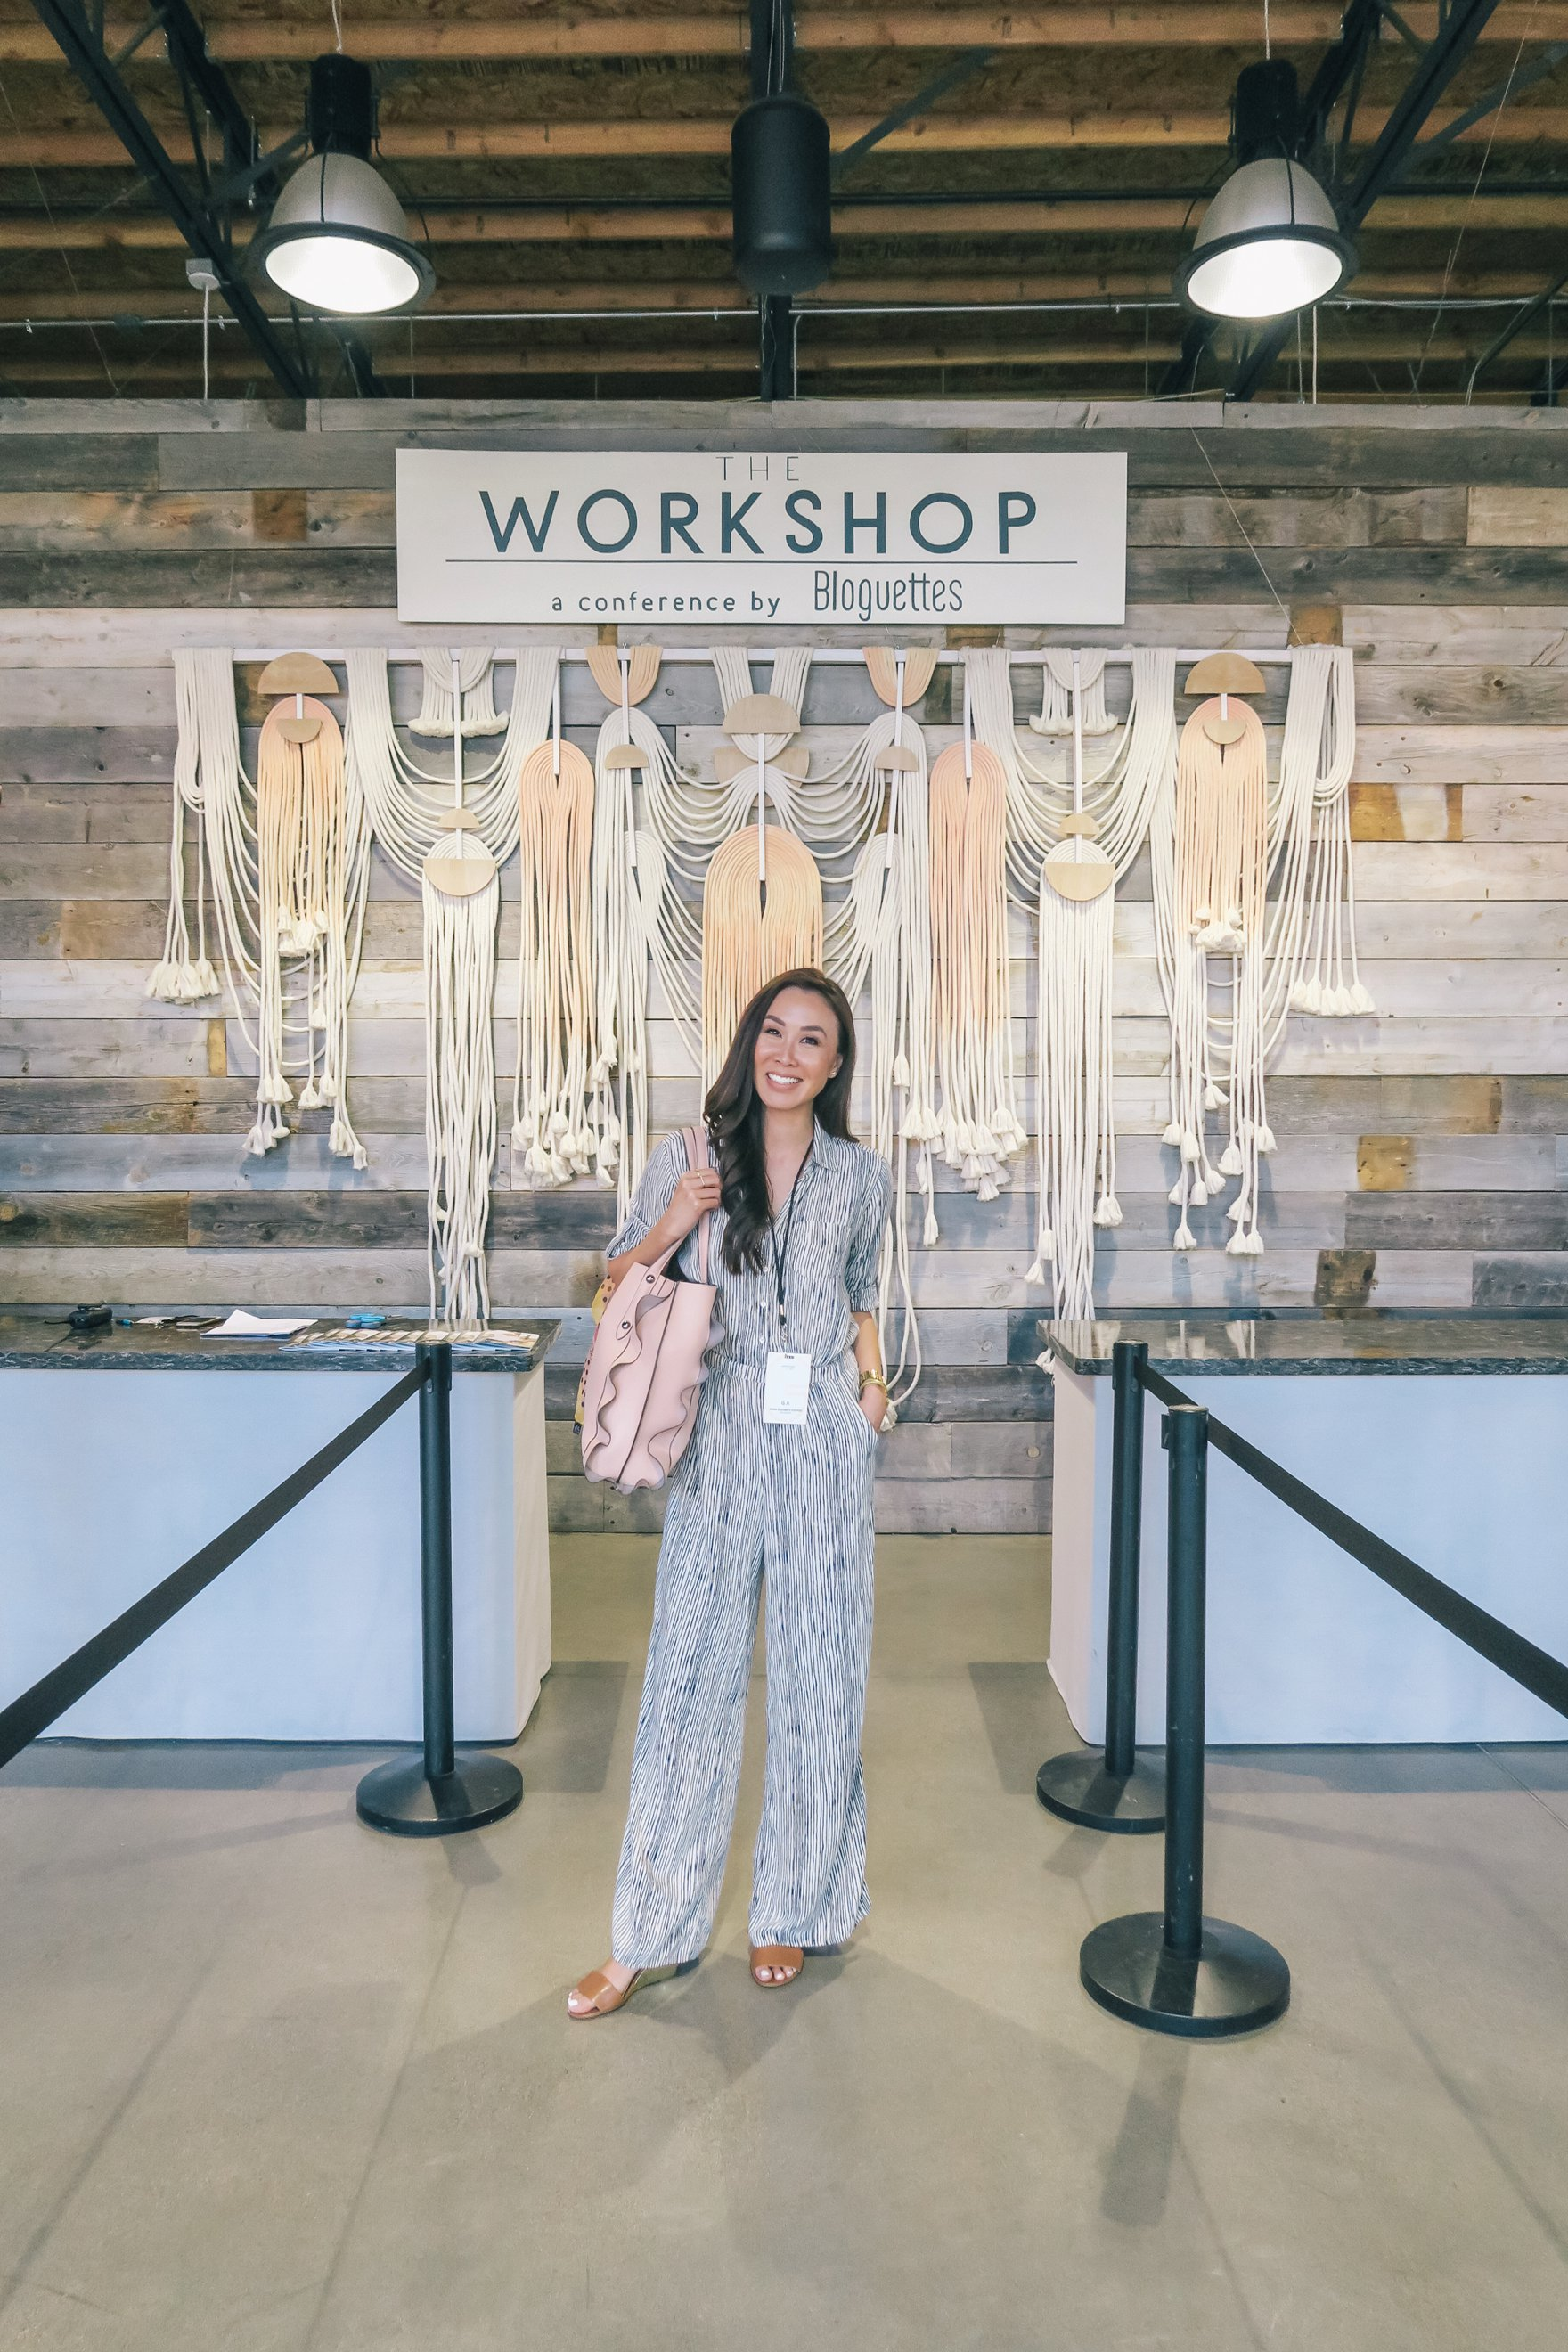 Anthropologie rope style backdrop // a business and blogging social media workshop called The Workshop PHX by the Bloguettes - a review.